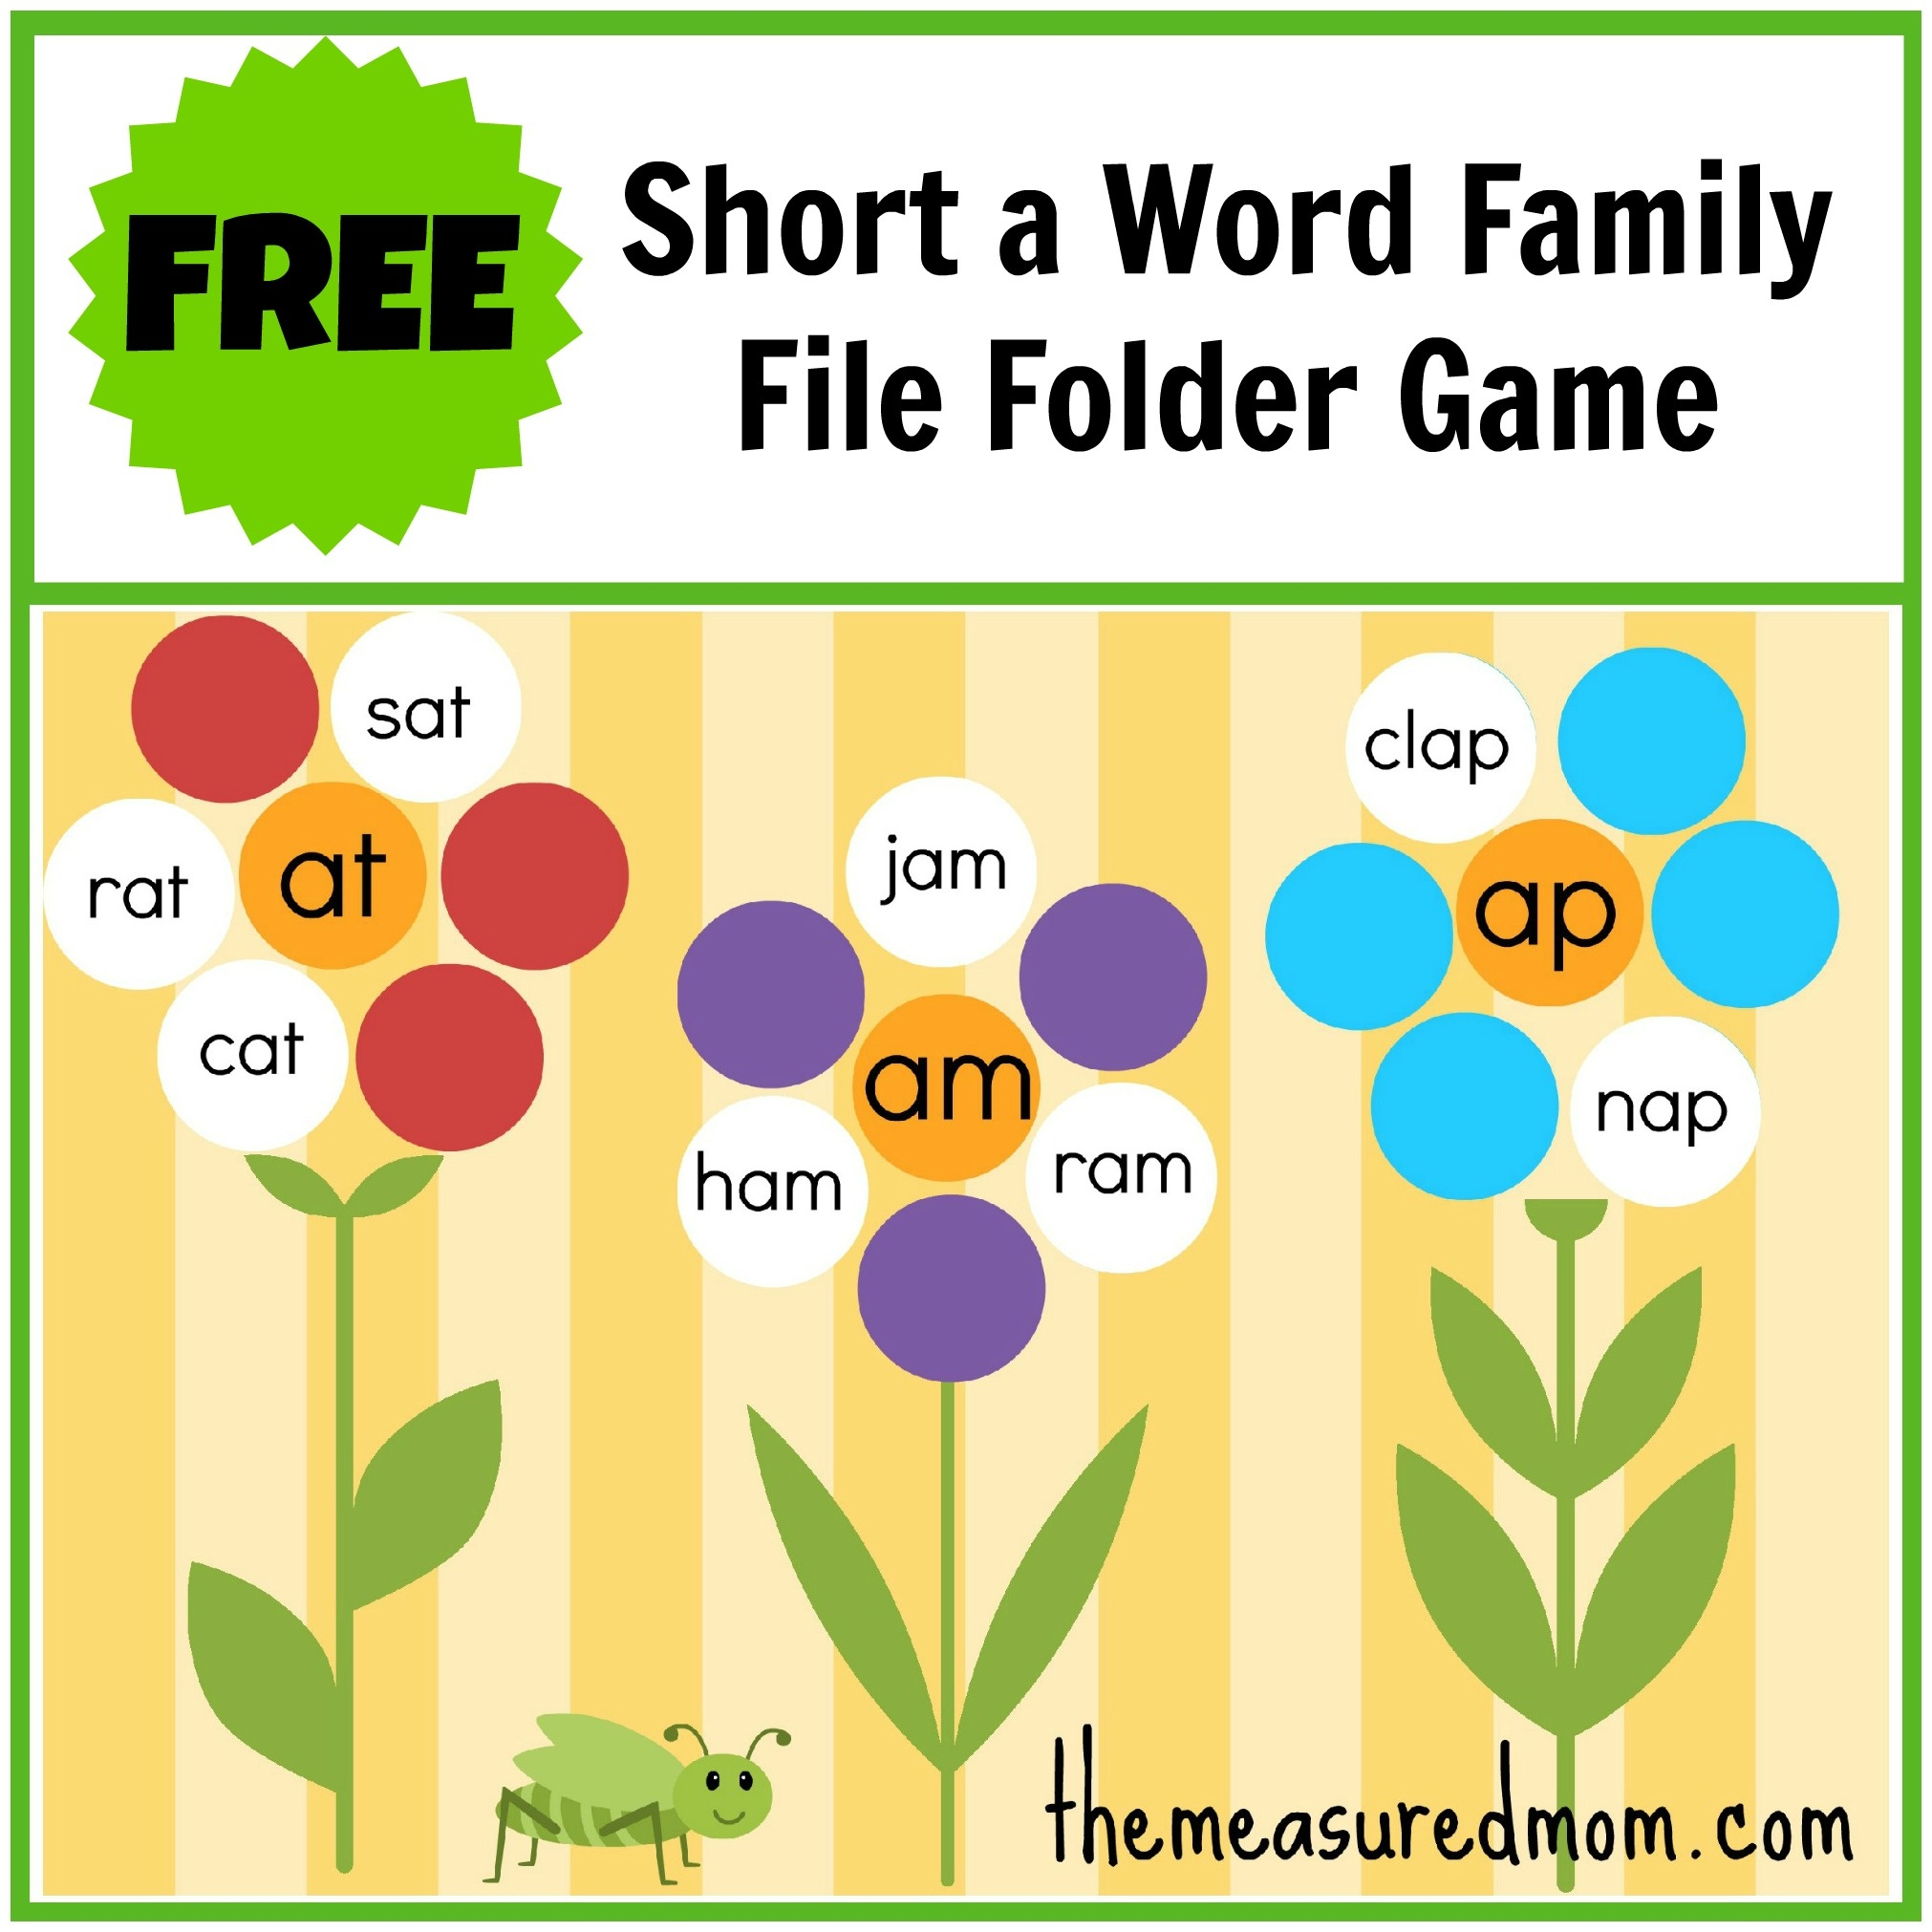 Free Word Family File Folder Game: Short A - The Measured Mom - Free Printable File Folder Games